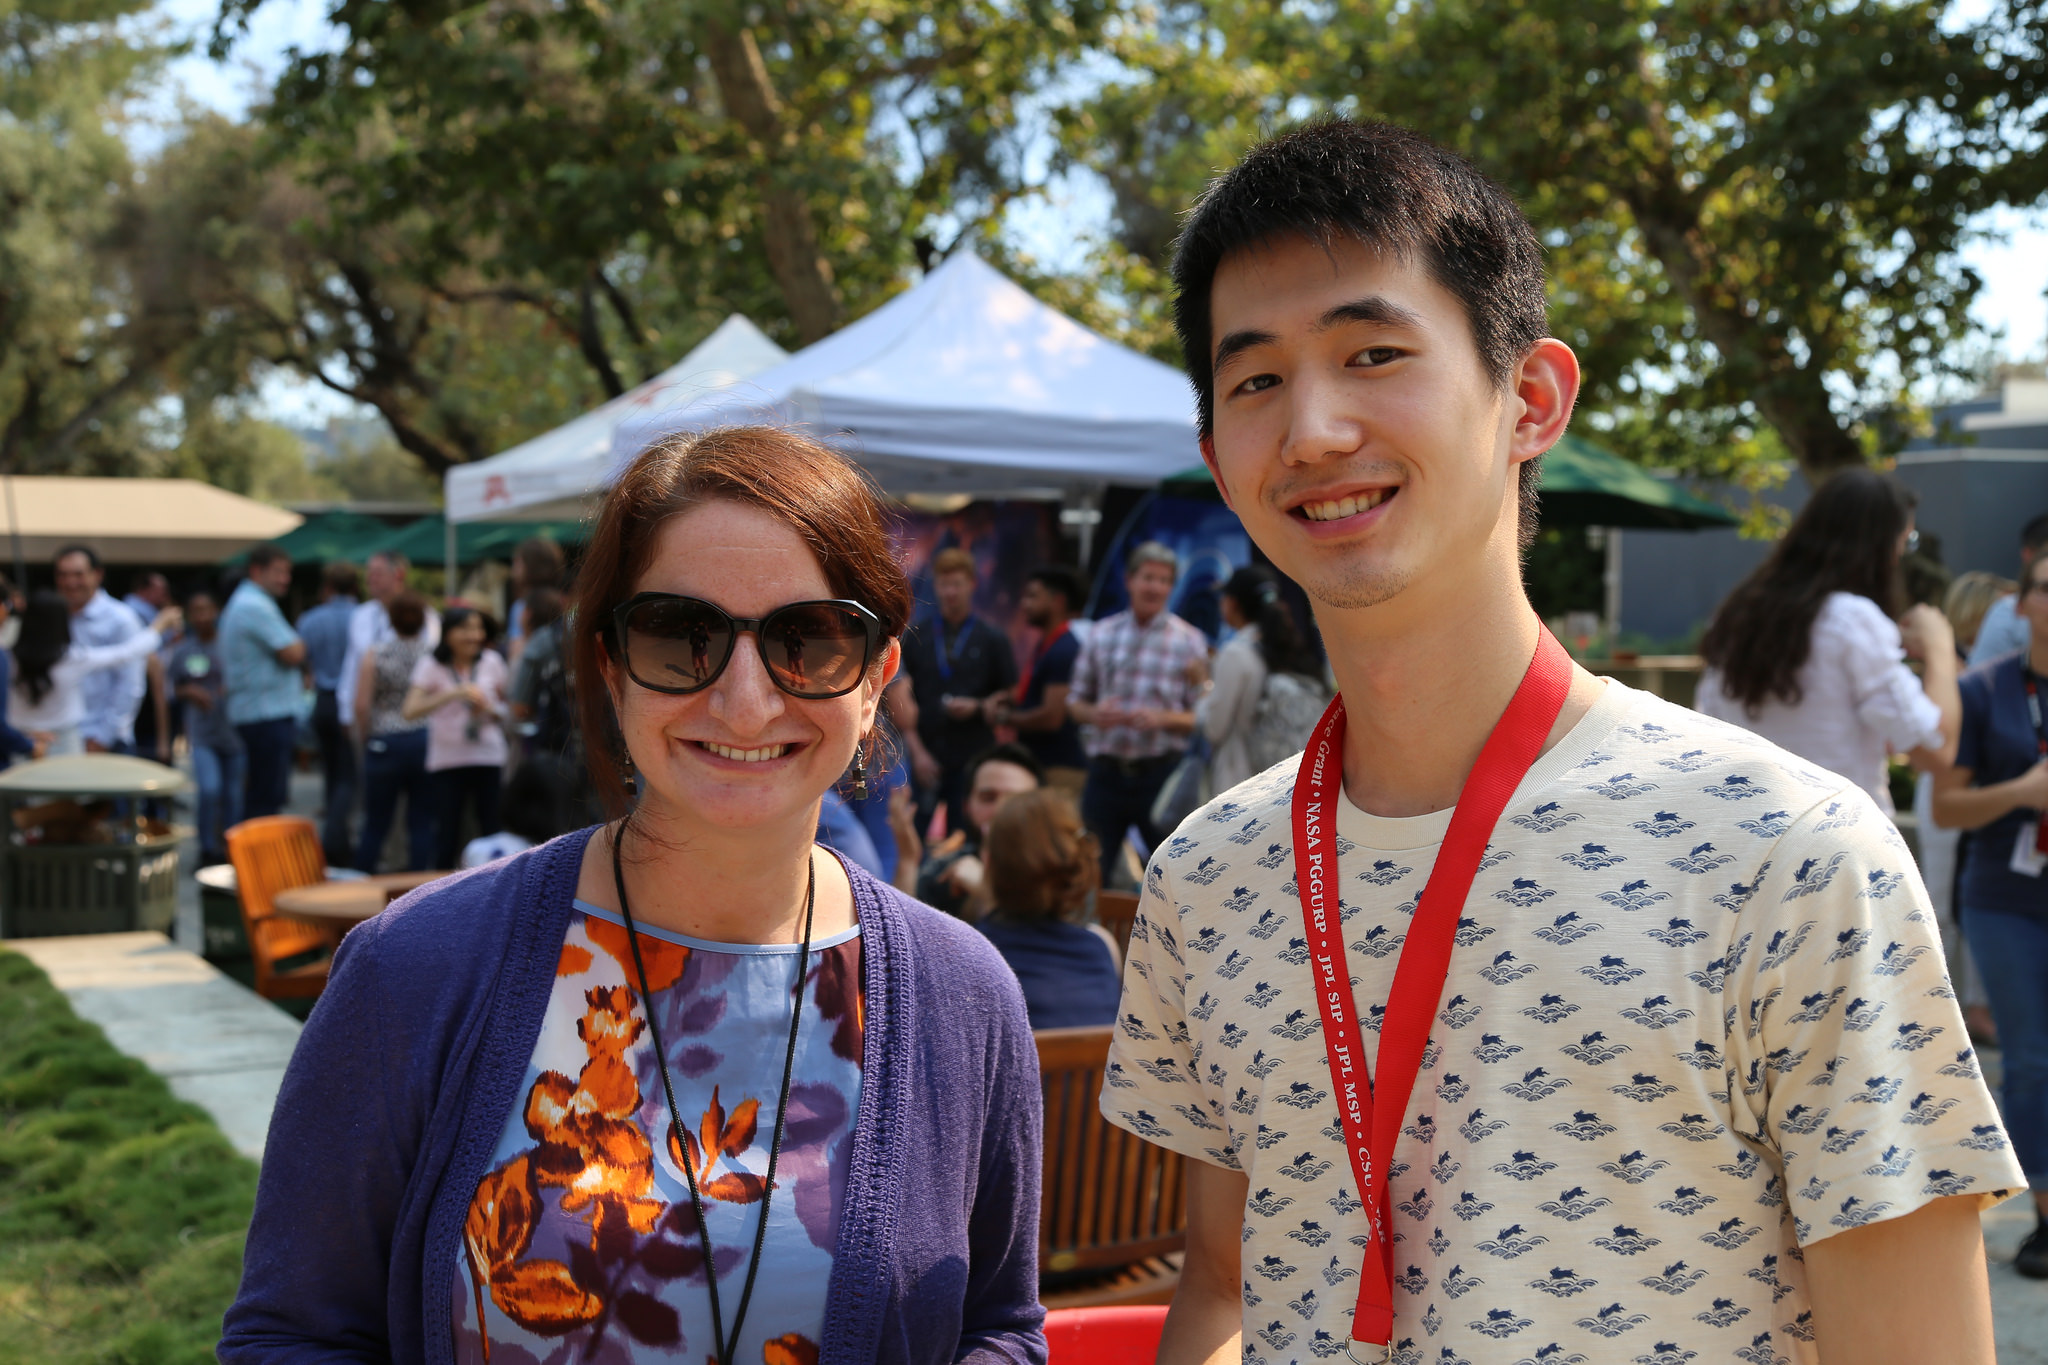 Christopher Jia-Kuan Yen poses with his mentor, Abigail Fraeman, during a mentor appreciation event held at JPL